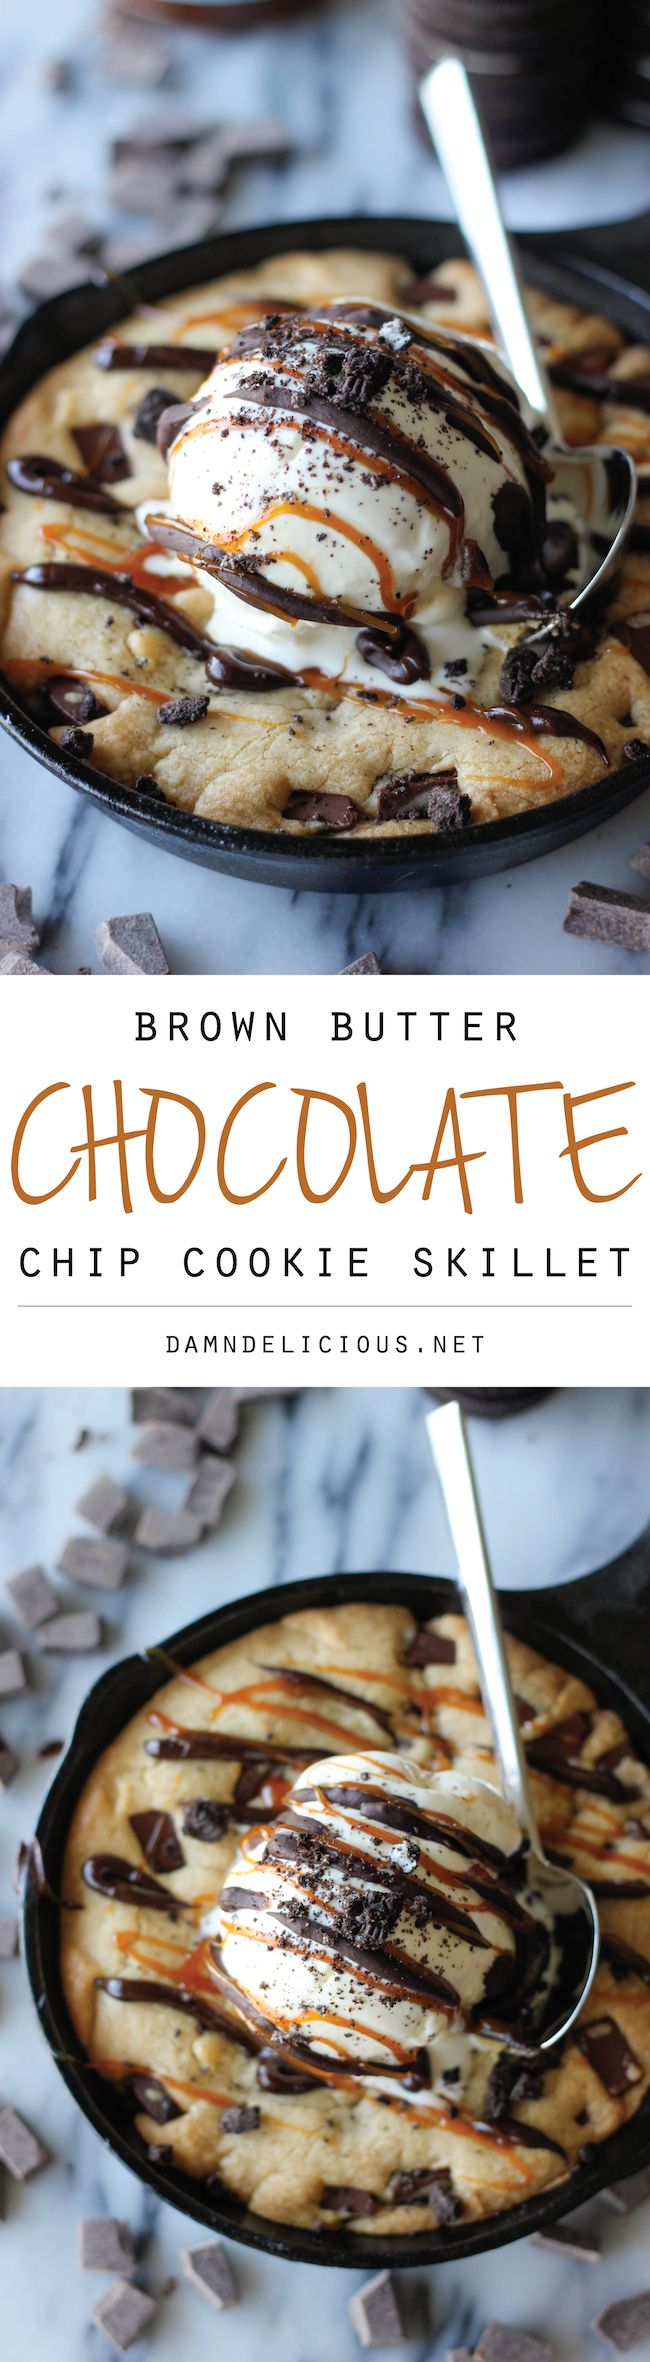 Brown Butter Chocolate Chip Cookie Skillet #hellocolor #hellobrown